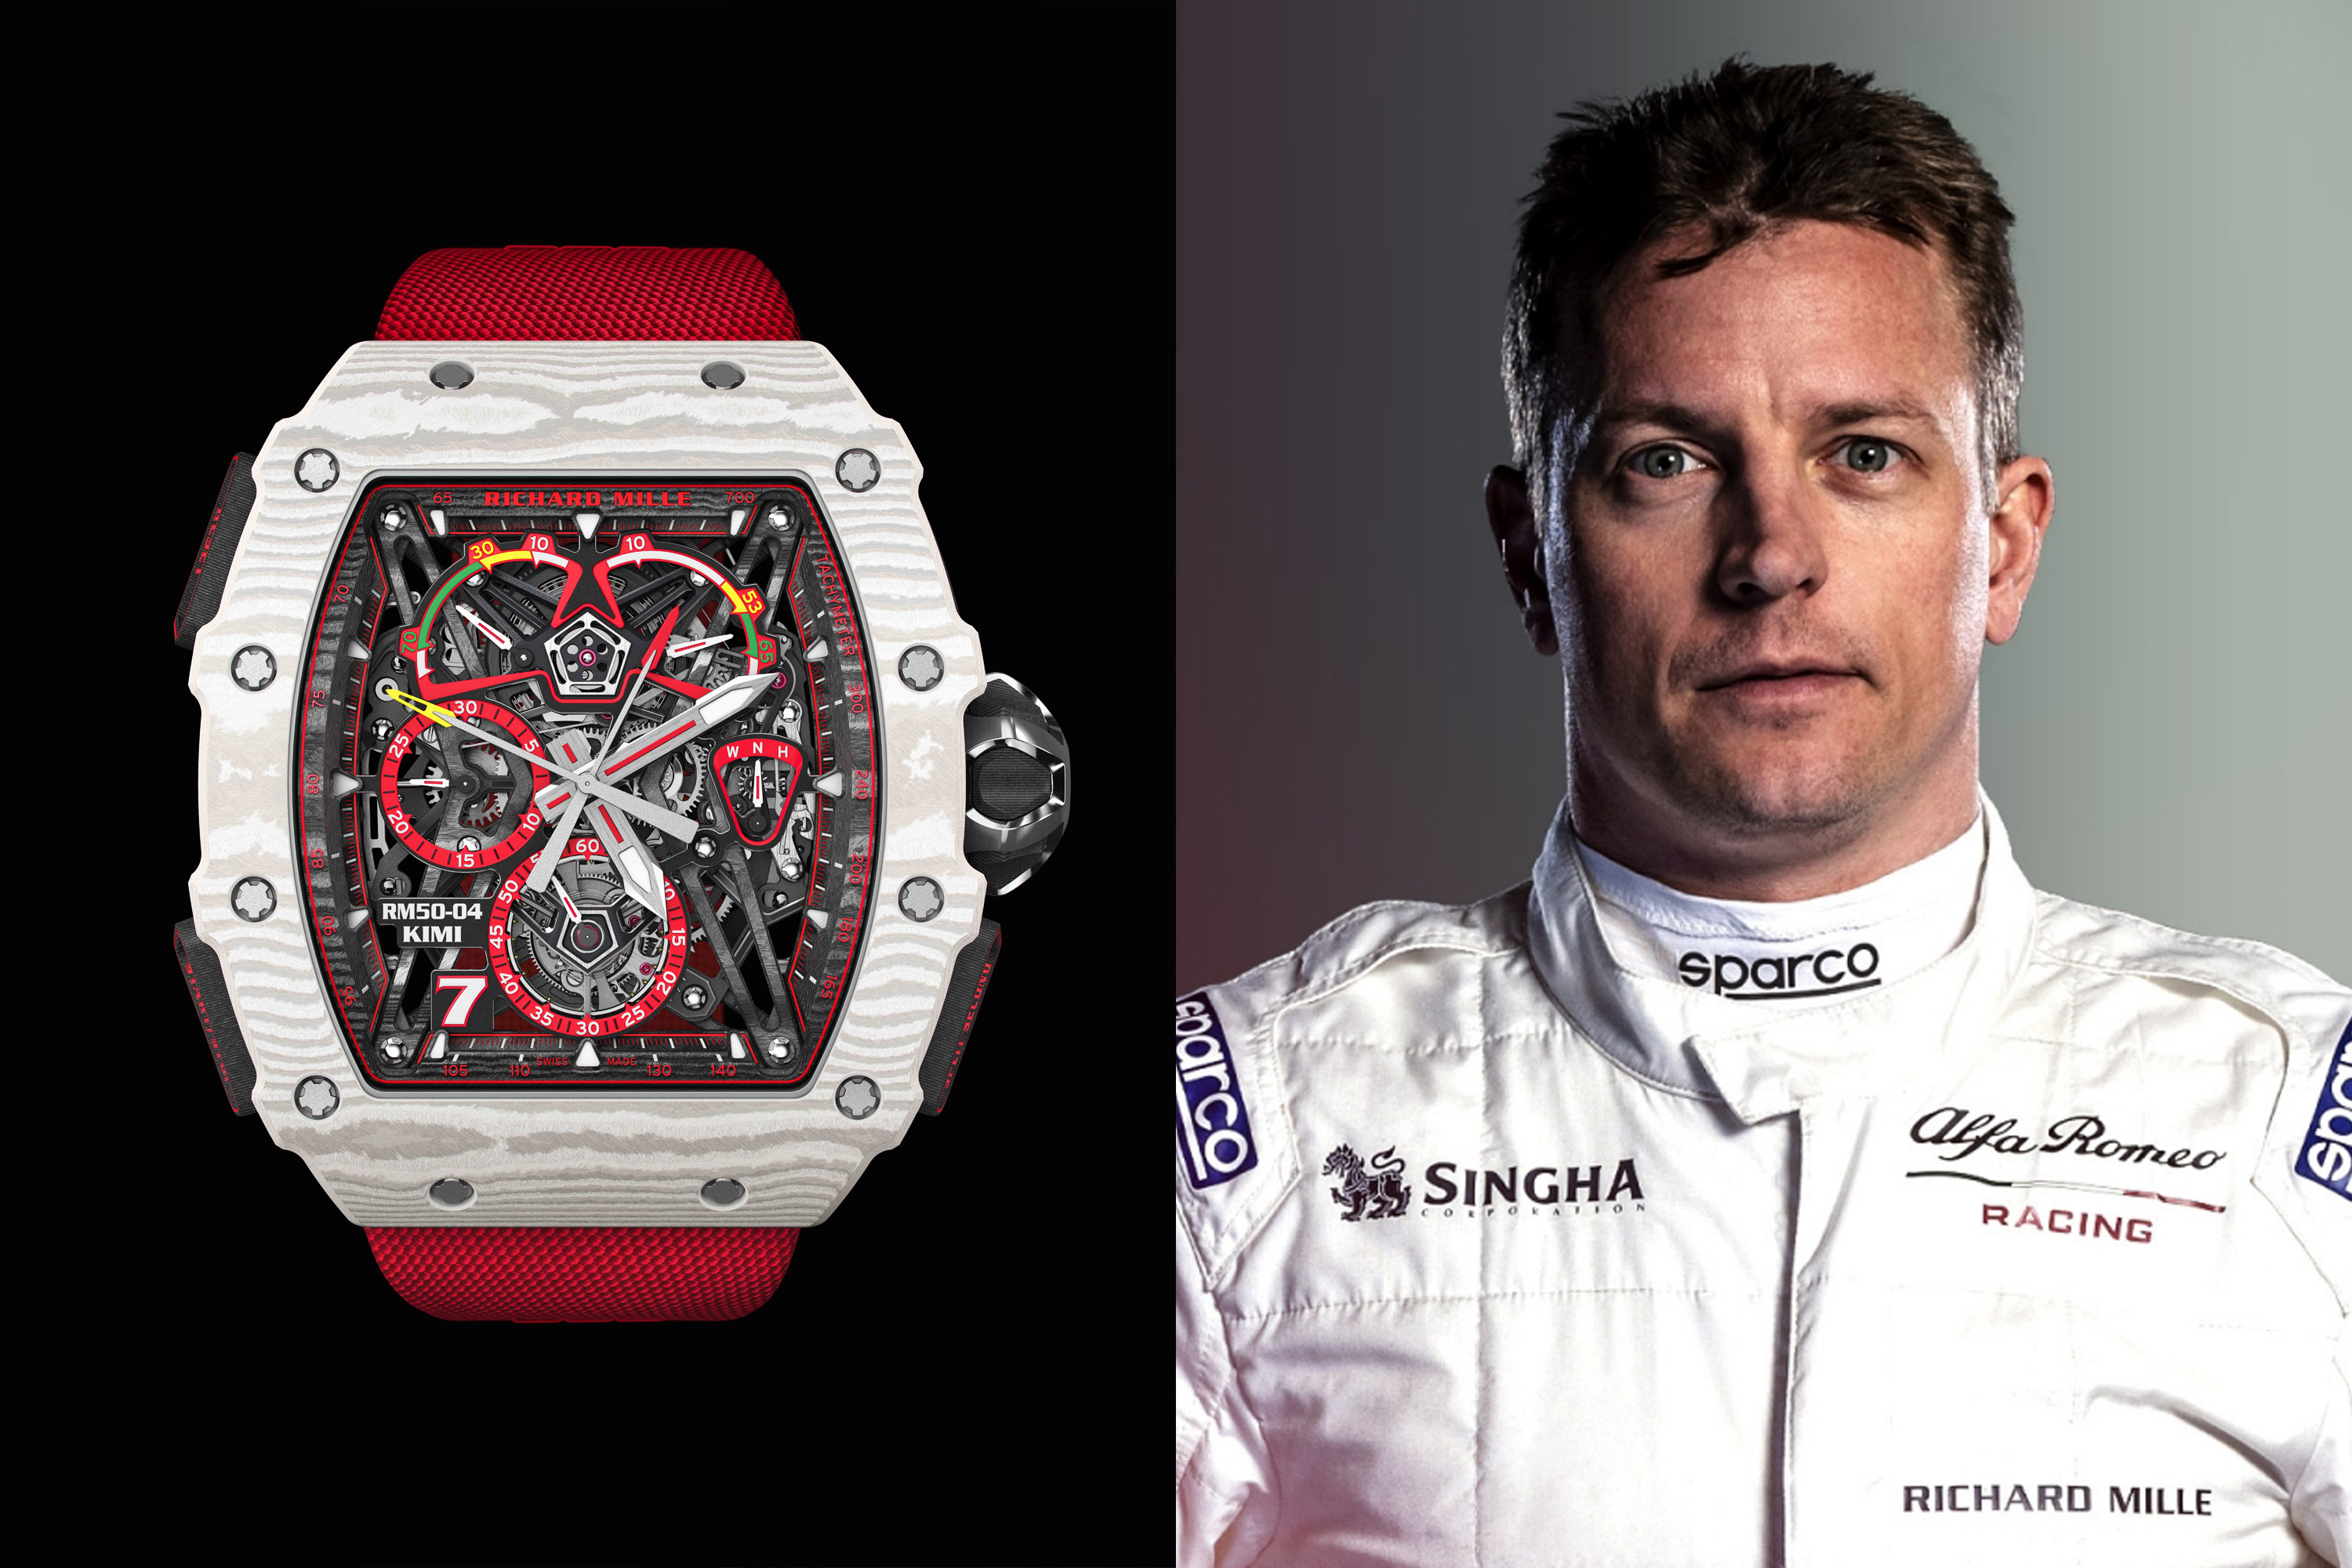 F1 Driver Kimi Raikkonen Teams Up With Richard Mille Esquire Middle East